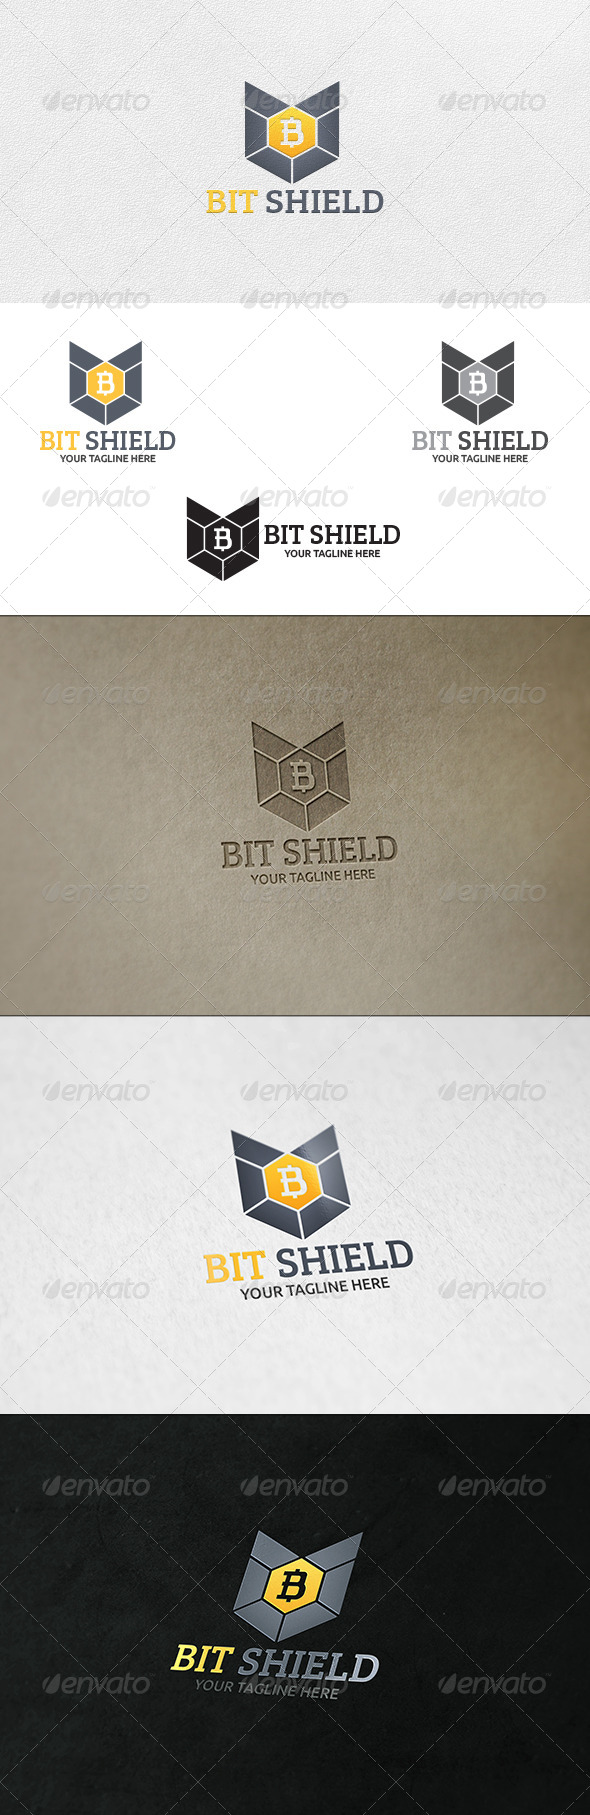 Bit Shield - Logo Template - Symbols Logo Templates